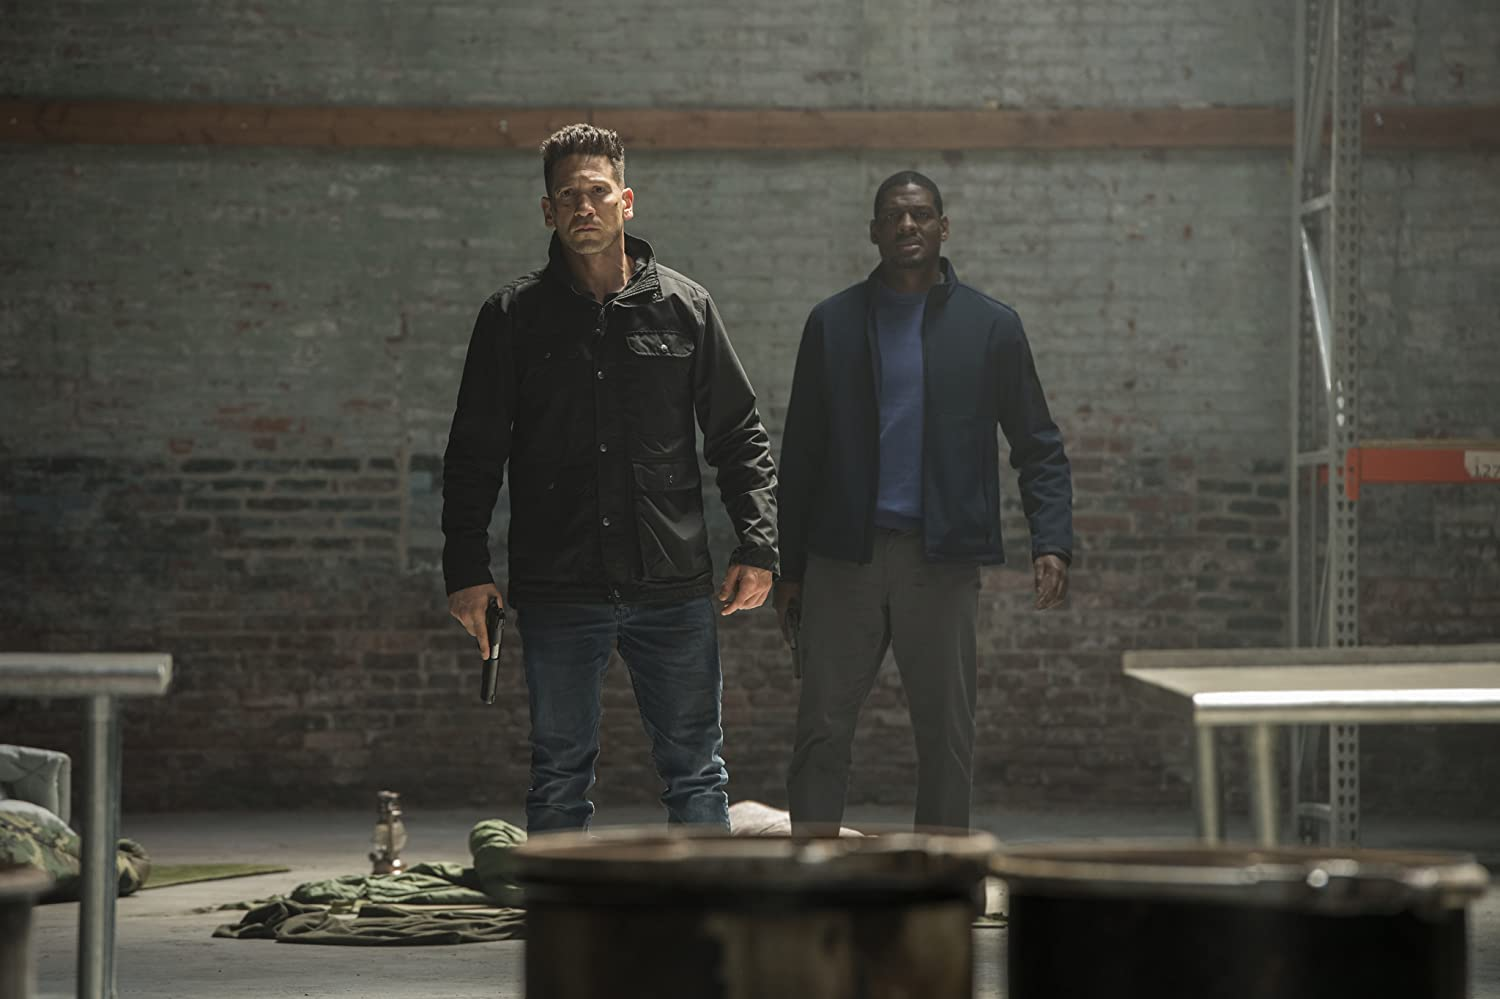 Jon Bernthal and Jason R. Moore in The Punisher (2017)